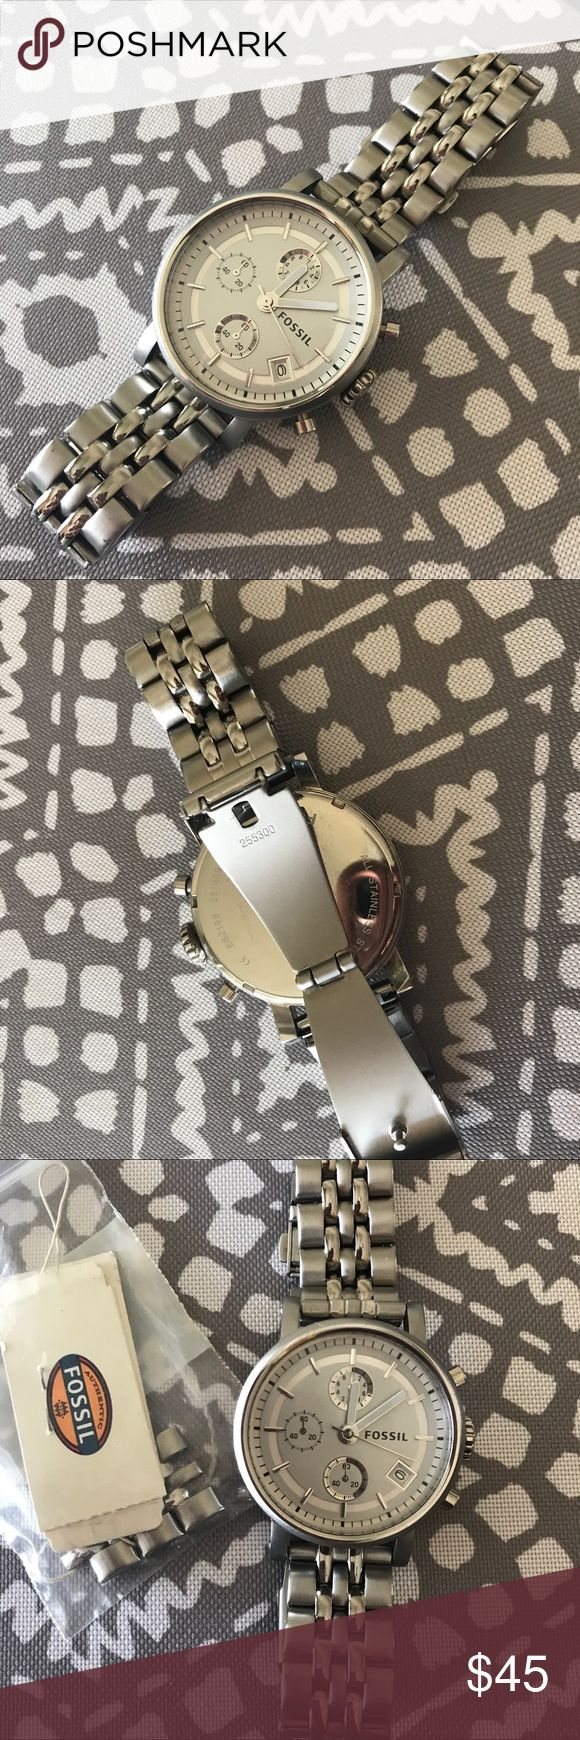 Women's Fossil Watch In great condition. Only worn a few times. Needs a new battery. I do not have the original packaging. Fossil Accessories Watches